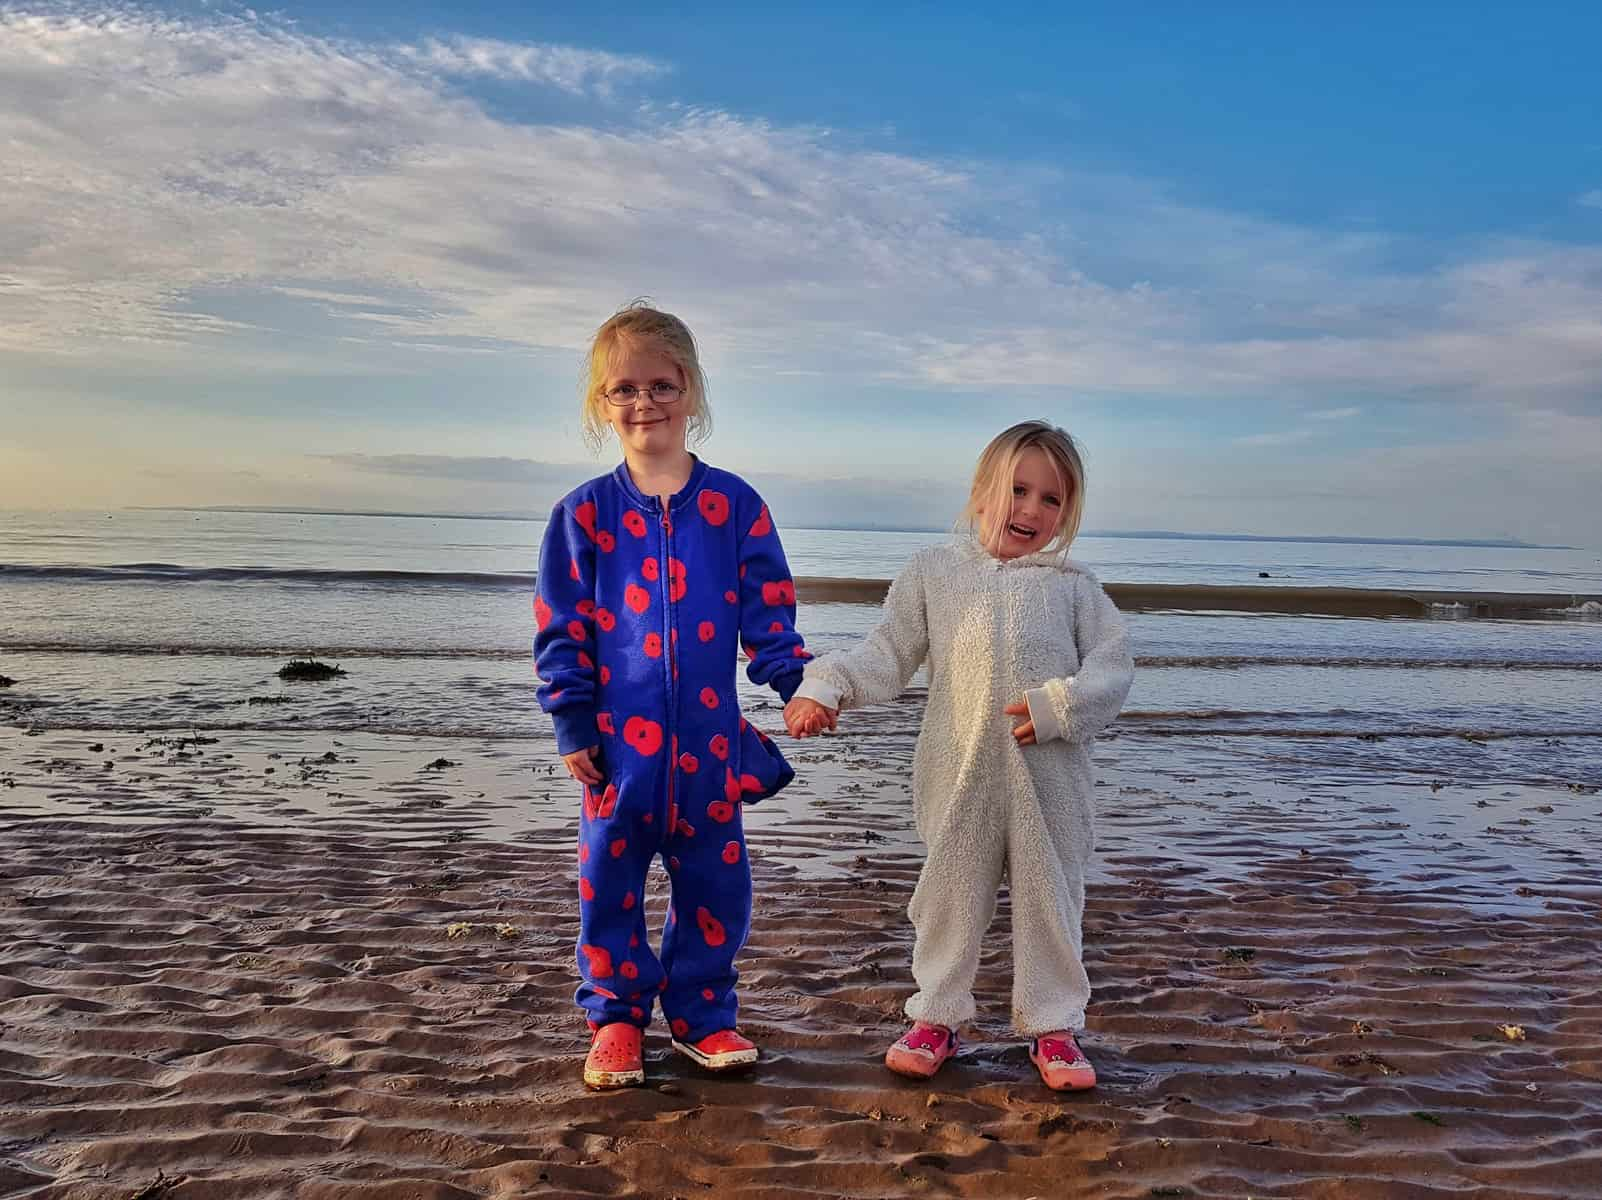 Hoburne Blue Anchor children on beach in onesies